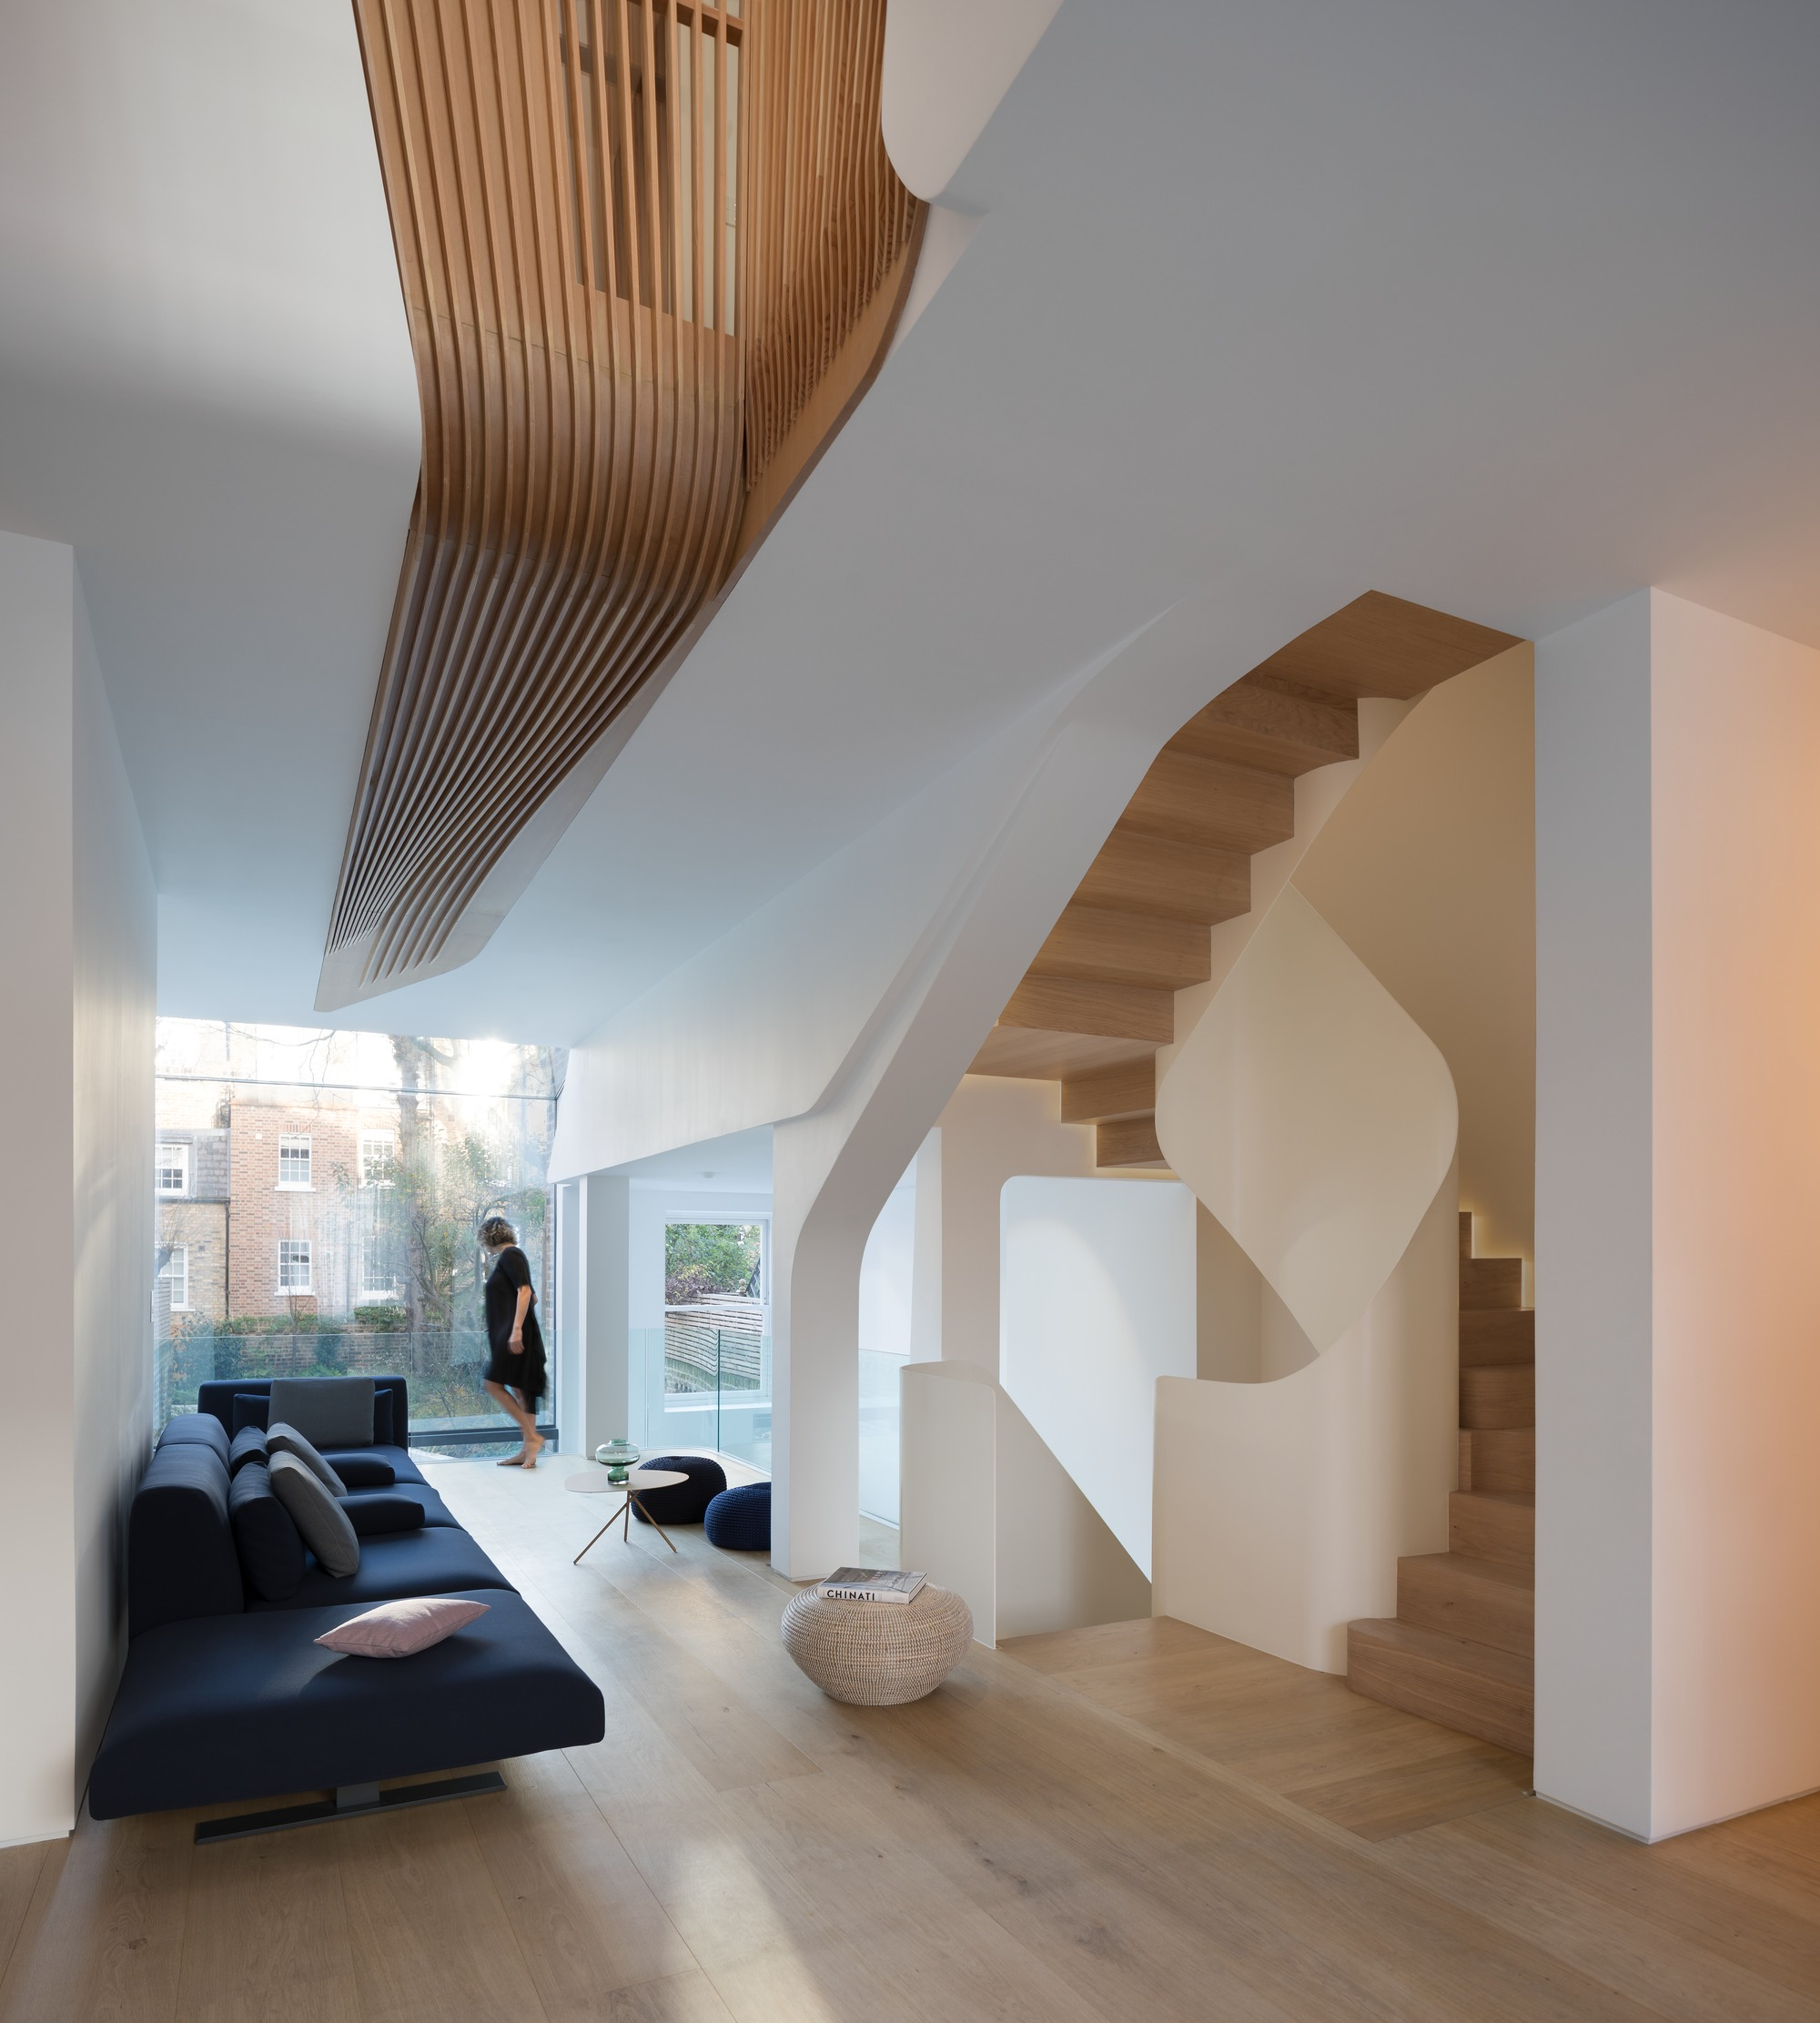 Gallery of Light Falls House / FLOW Architecture + Magrits - 1